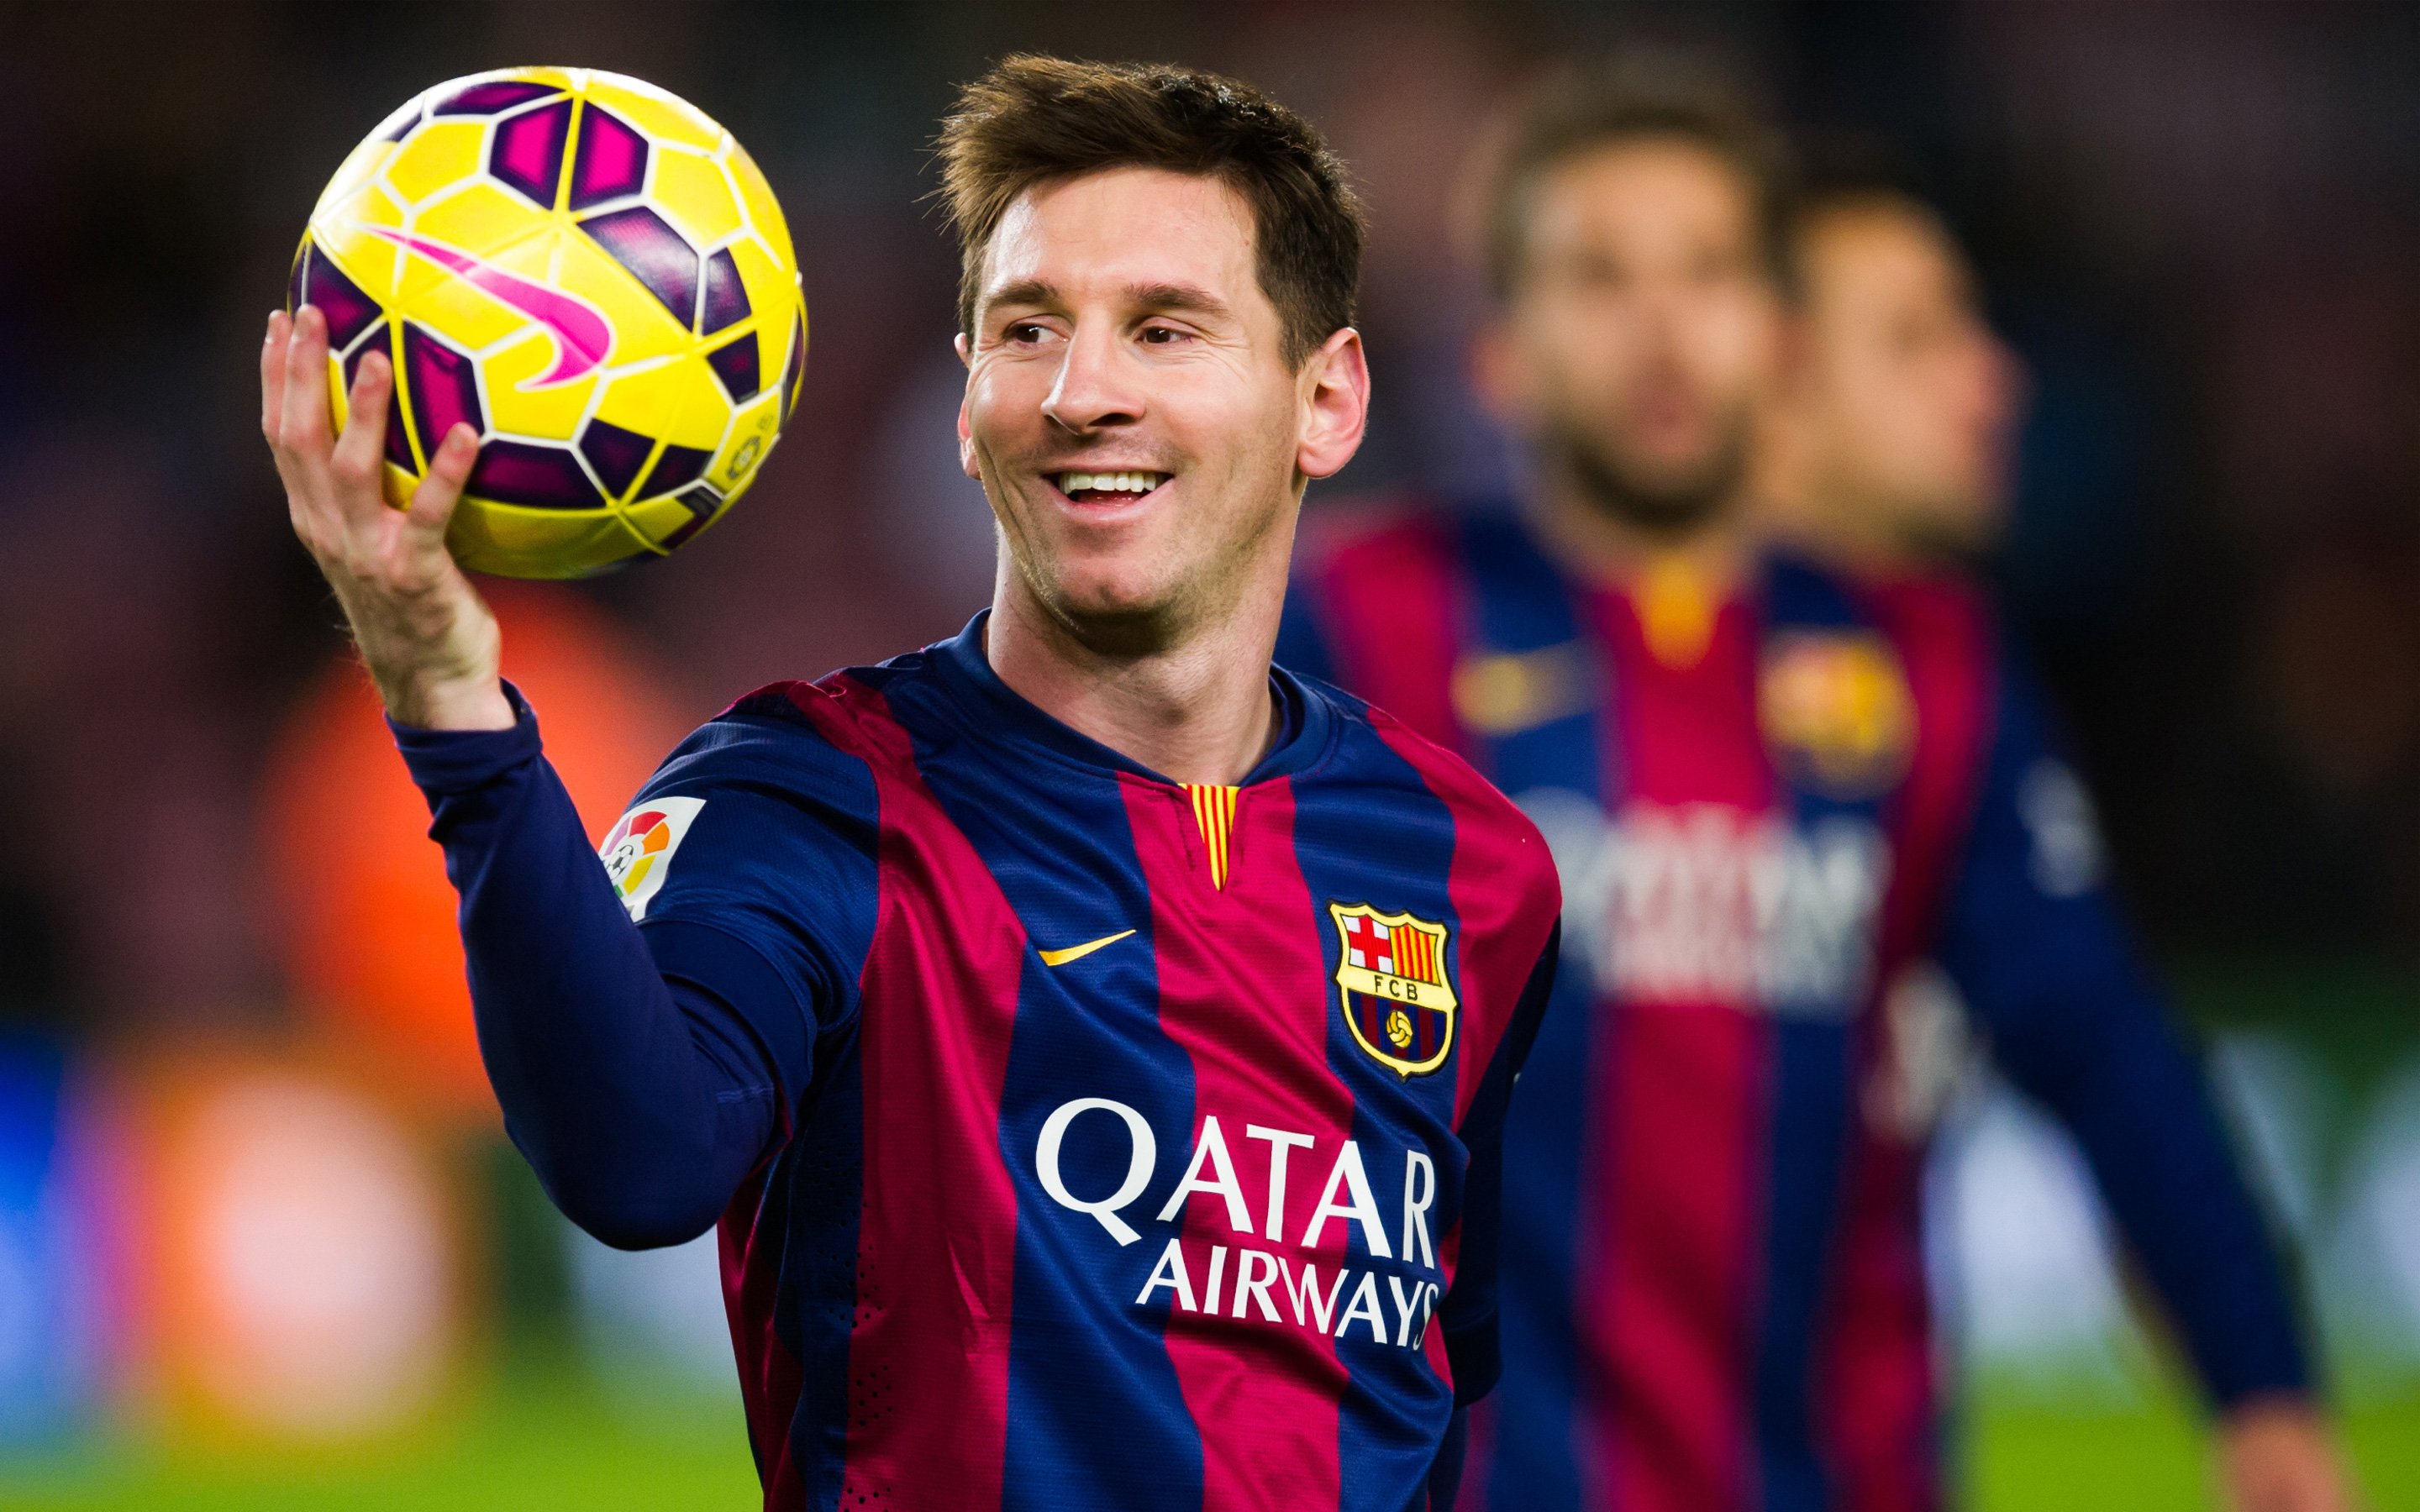 messi wallpapers photos and desktop backgrounds up to 8K